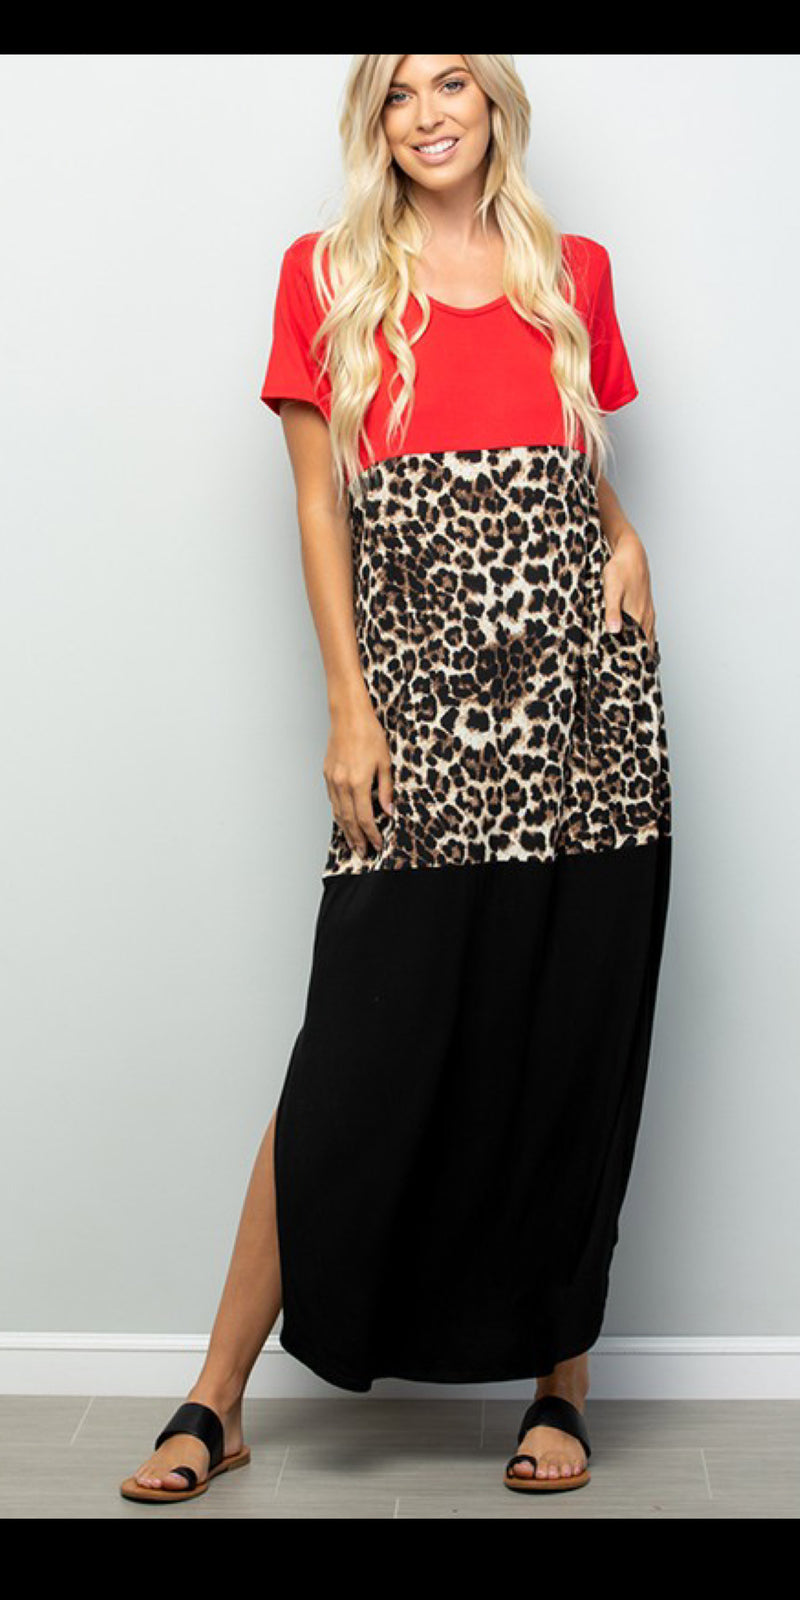 Red Rio Leopard Maxi Dress - Also in Plus Size